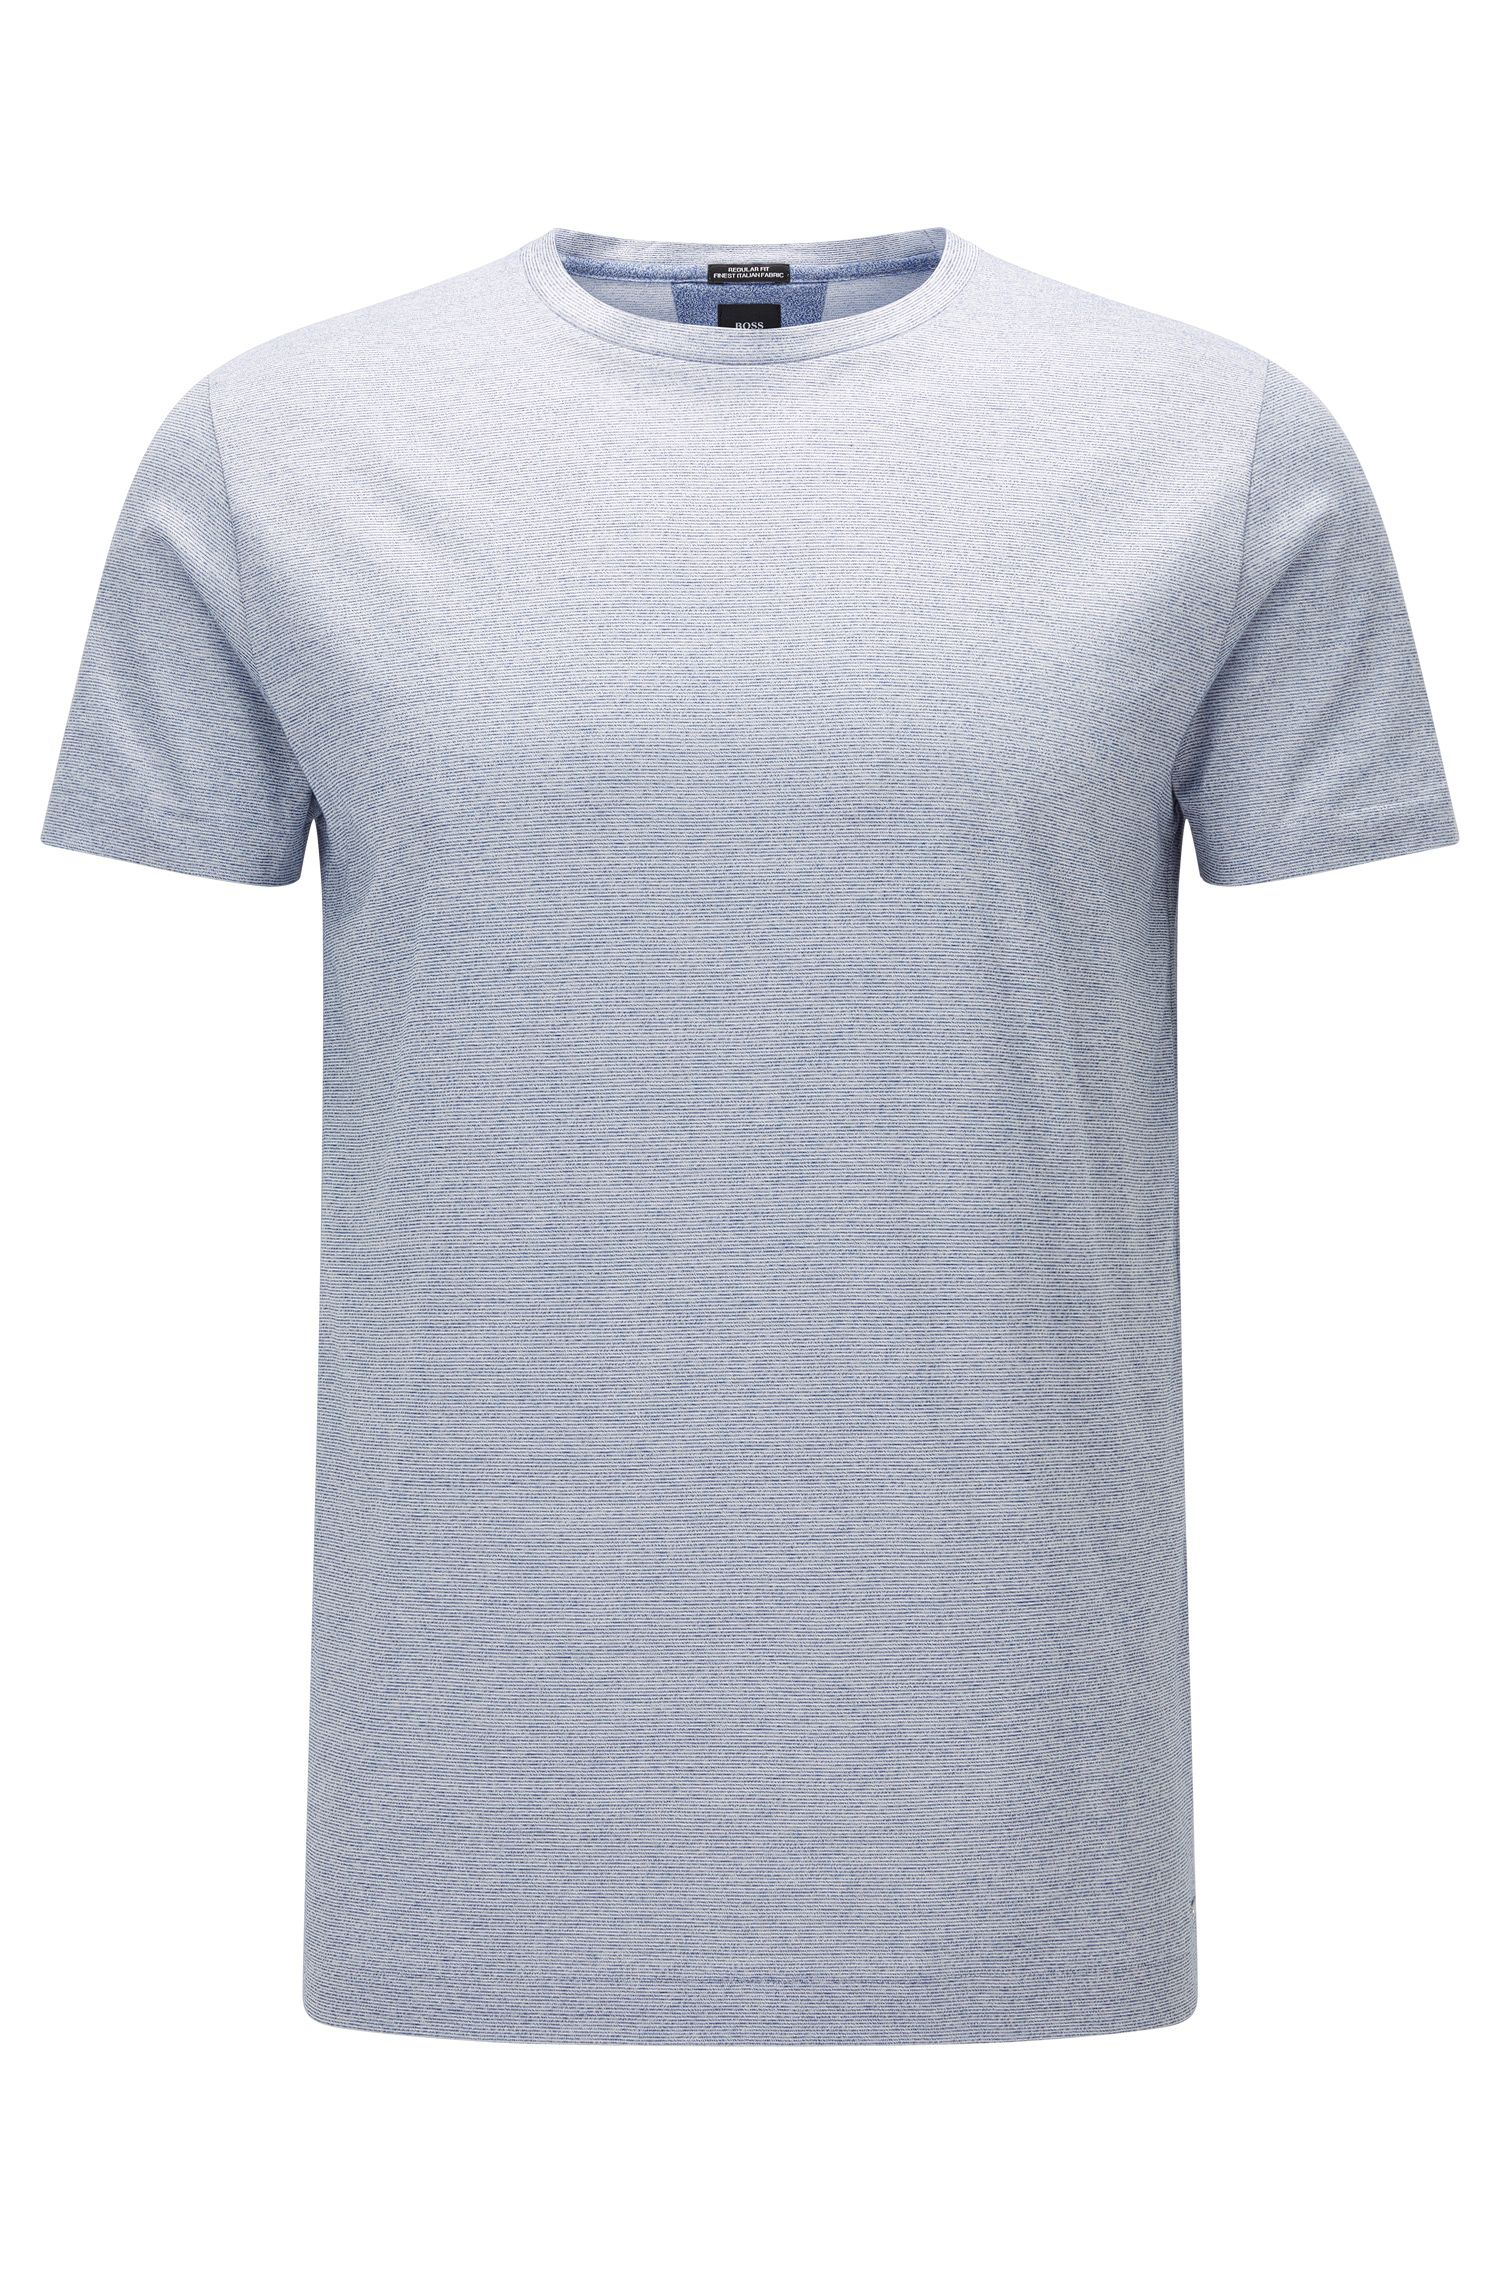 Italian Cotton T-Shirt | T-Tesar